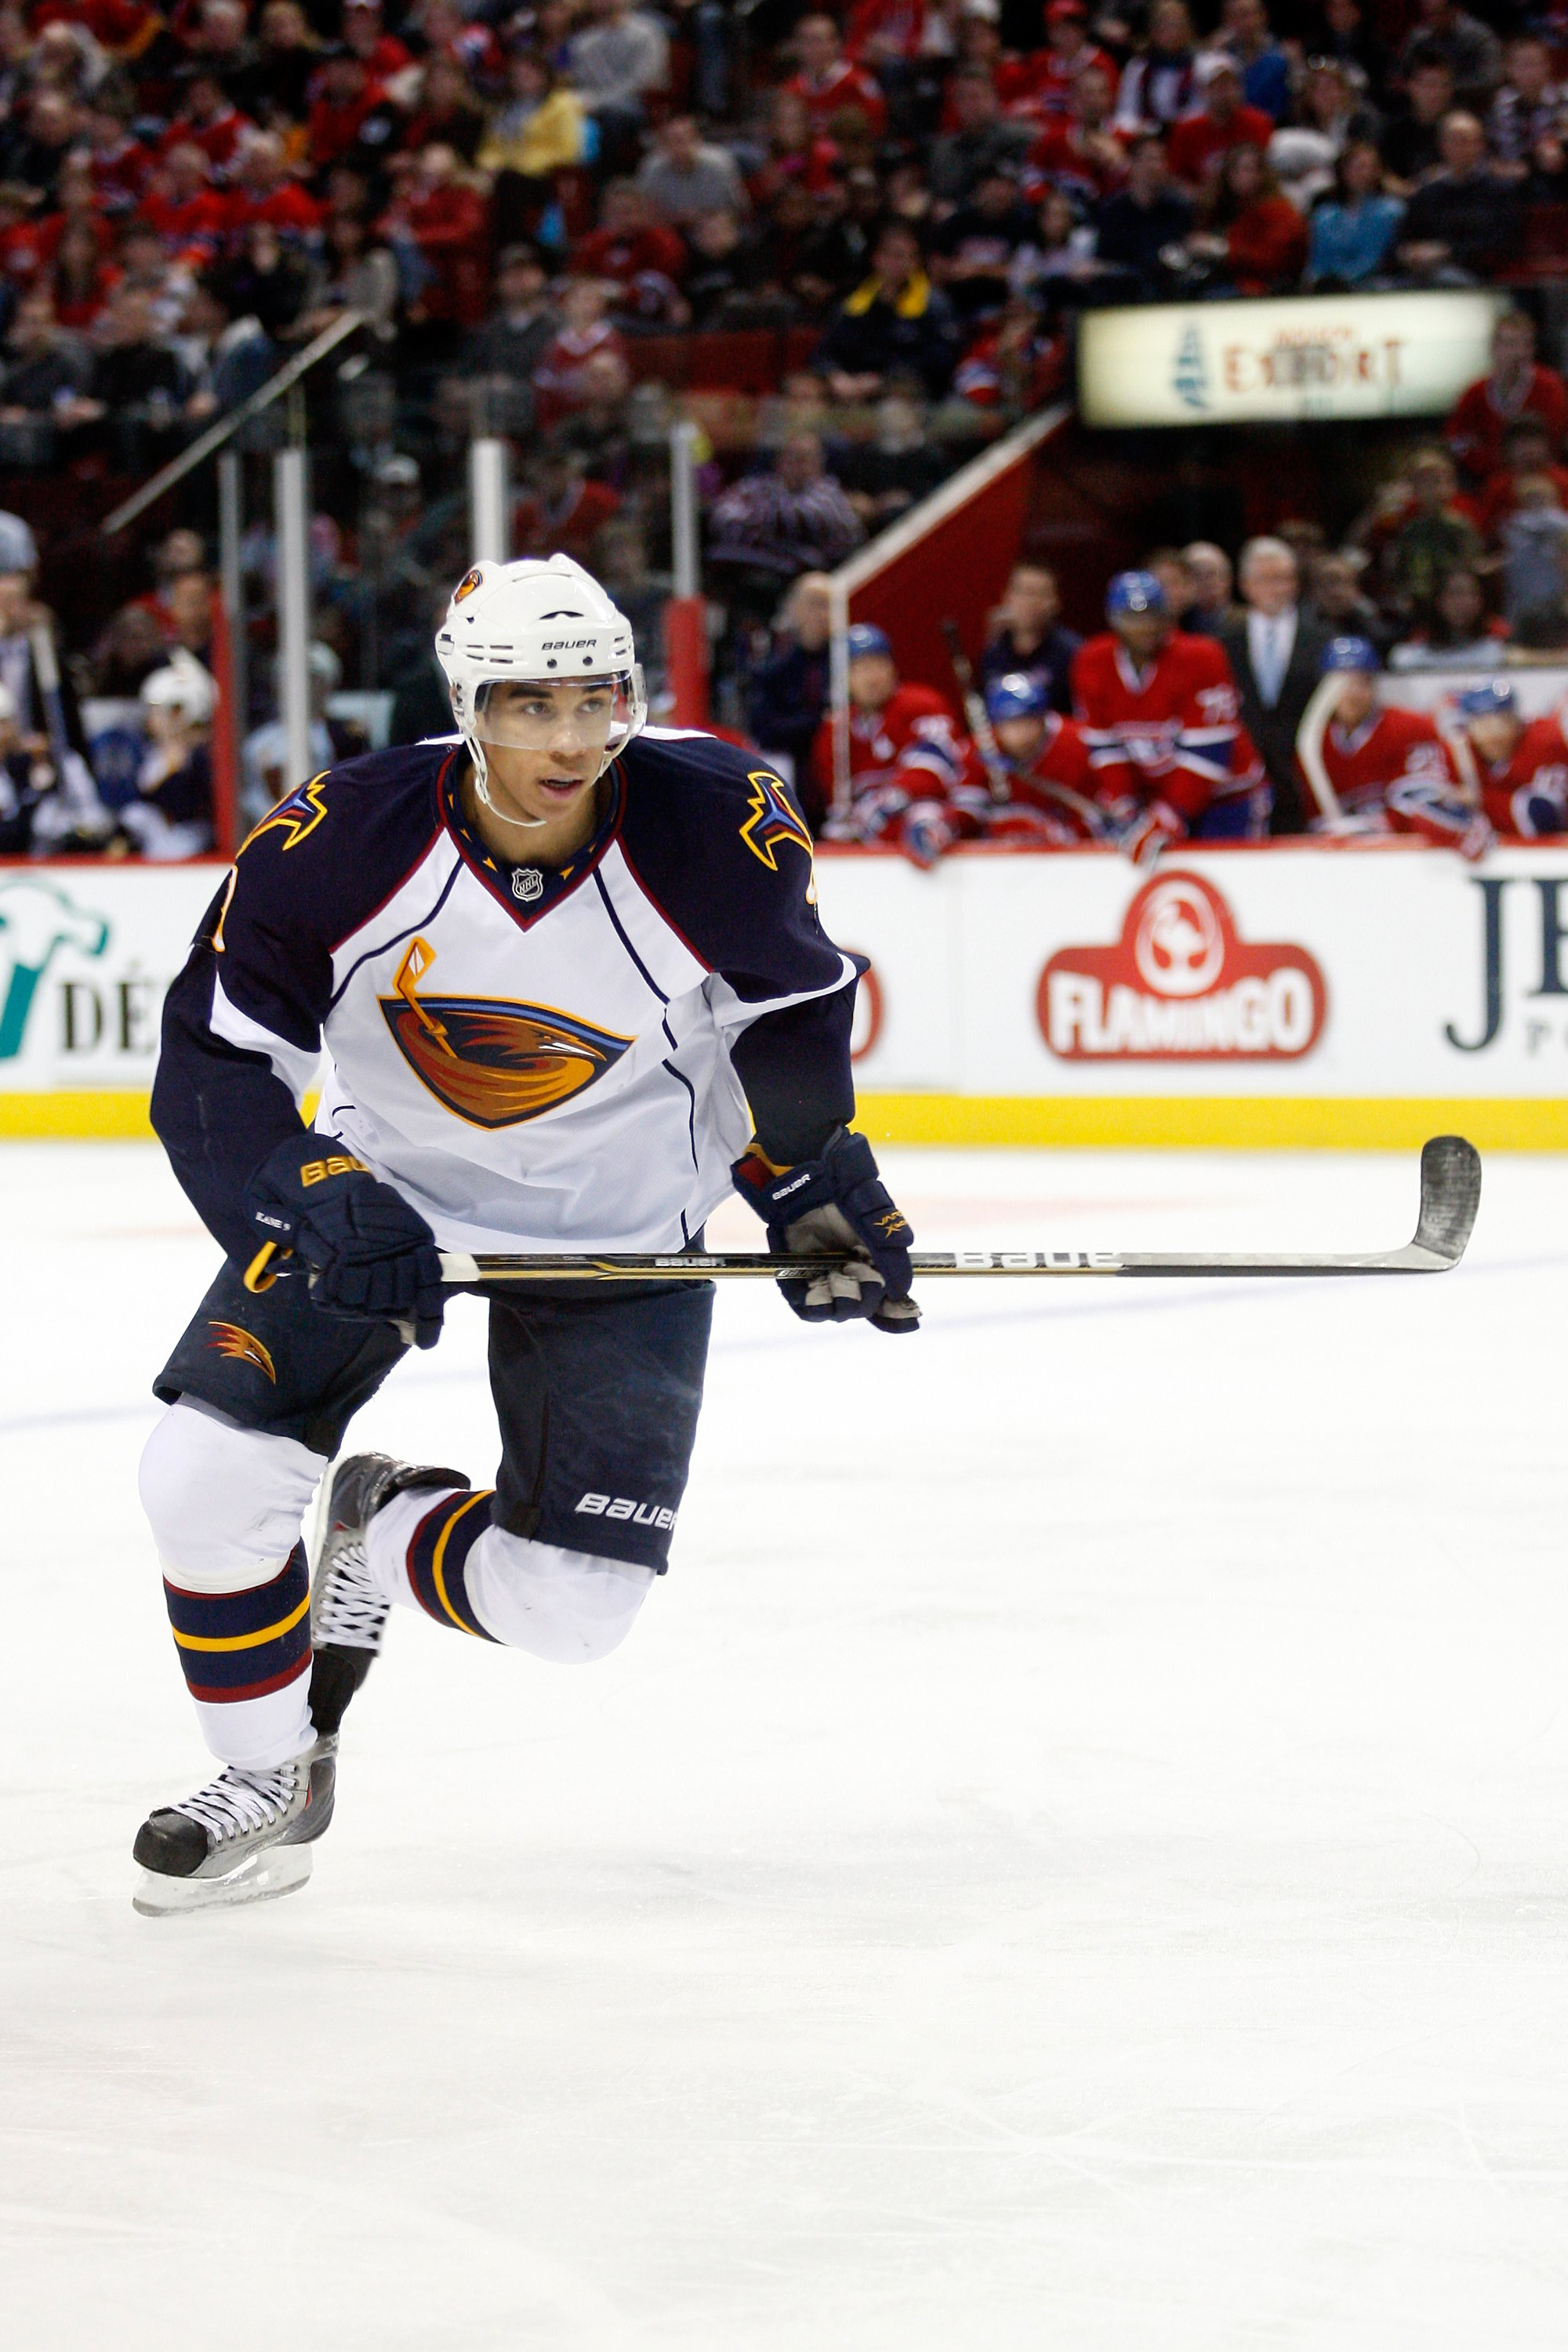 MONTREAL, CANADA - JANUARY 2:  Evander Kane #9 of the Atlanta Thrashers skates during the NHL game against the Montreal Canadiens at the Bell Centre on January 2, 2011 in Montreal, Quebec, Canada.  The Thrashers defeated the Canadiens 4-3 in overtime.  (P